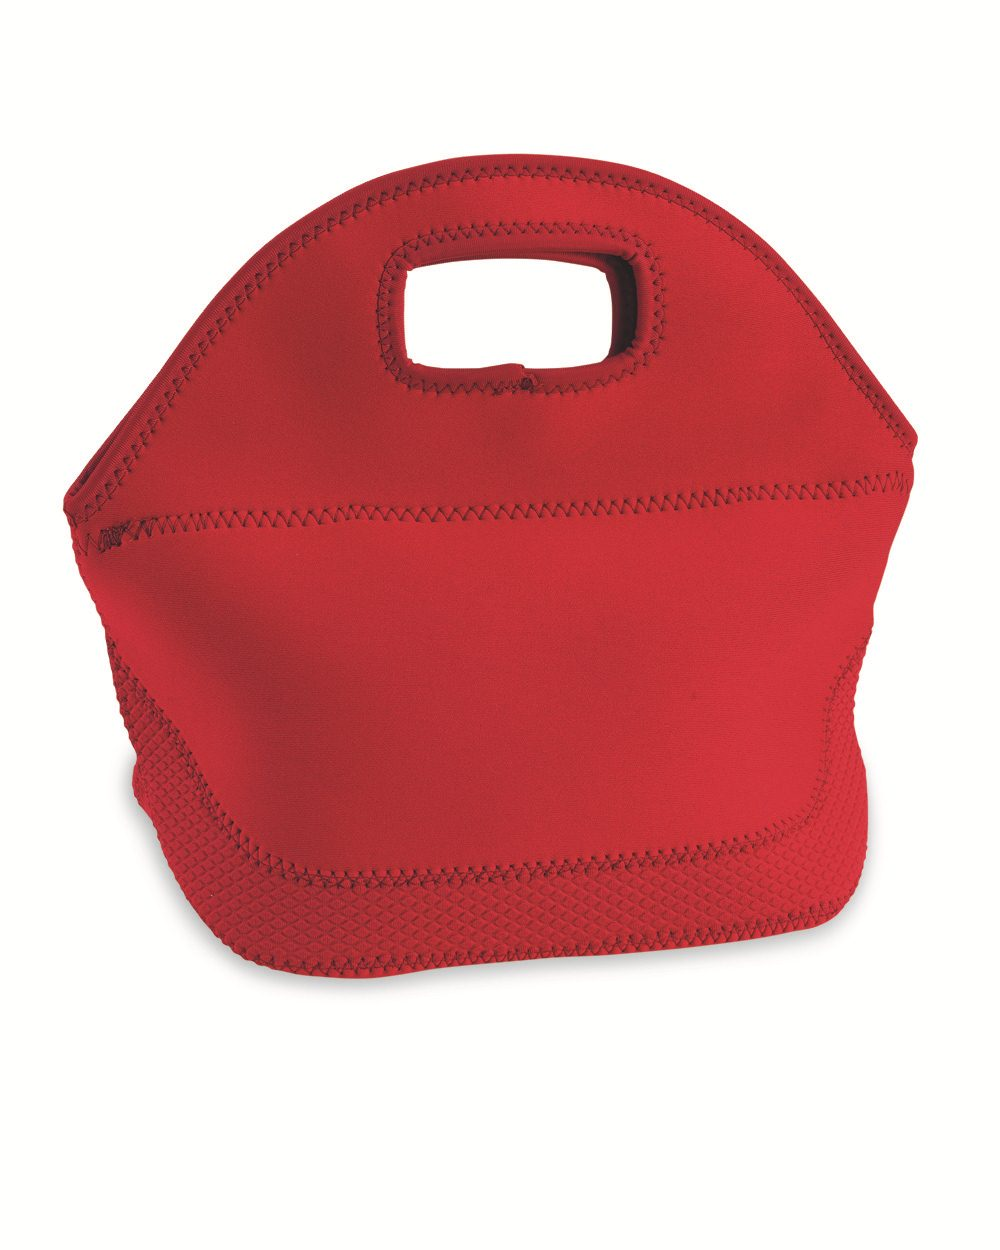 Valubag Neoprene Large Lunch Tote - VB1008